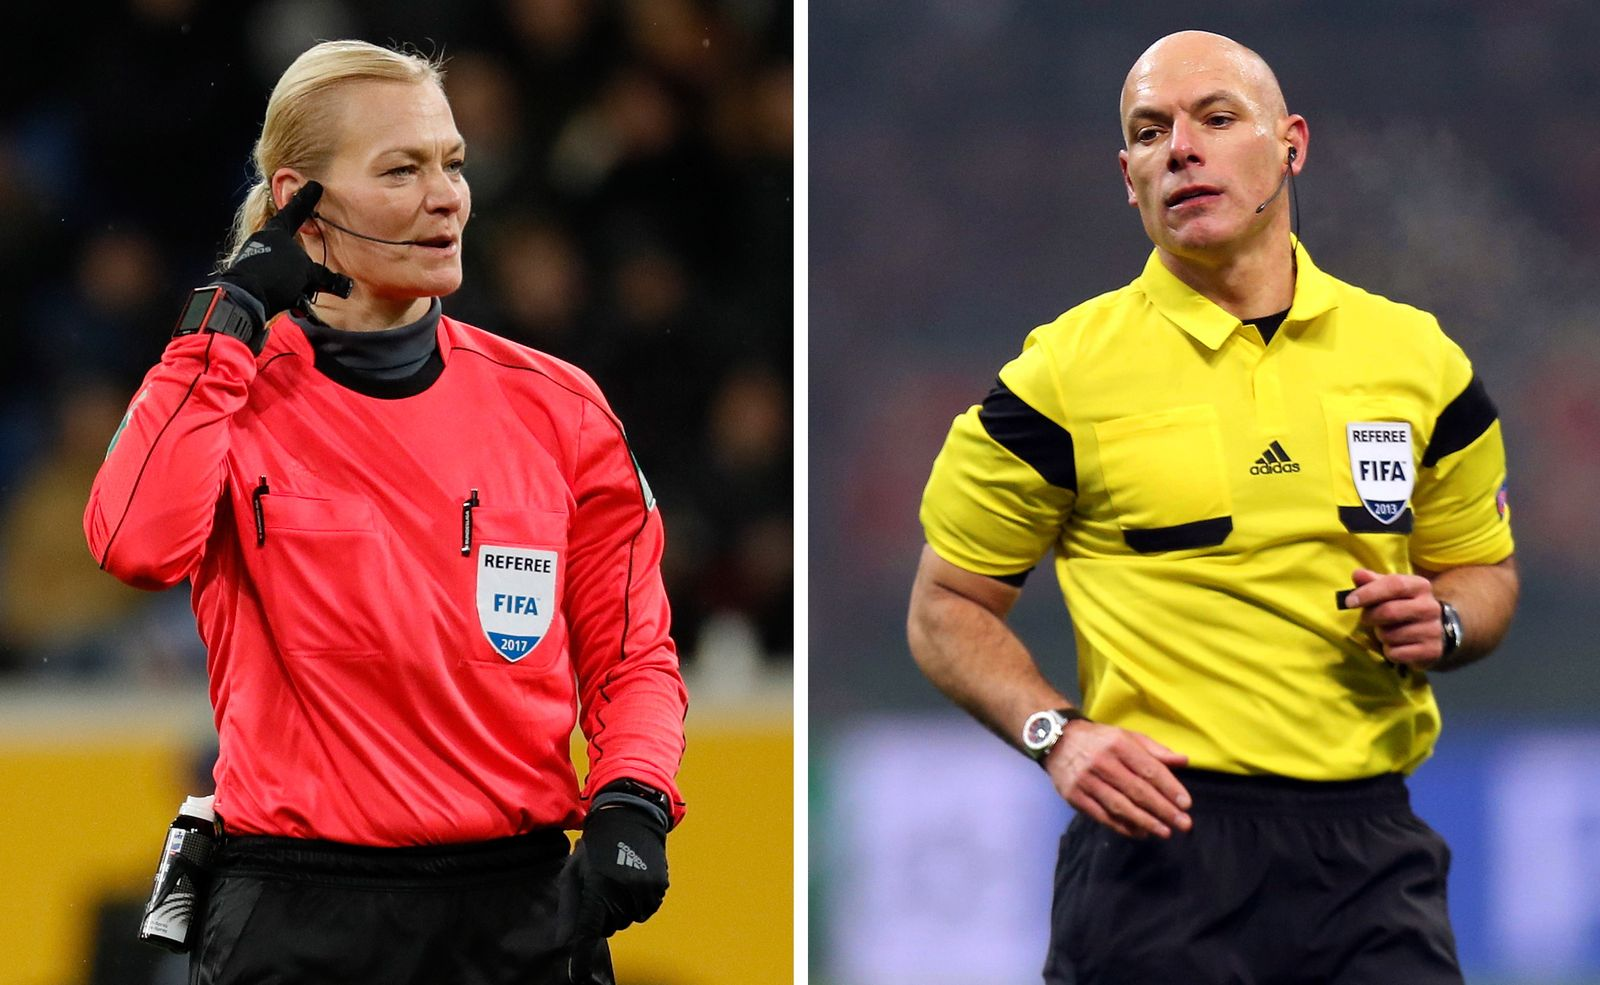 Former referees Bibiana Steinhaus and Howard Webb married